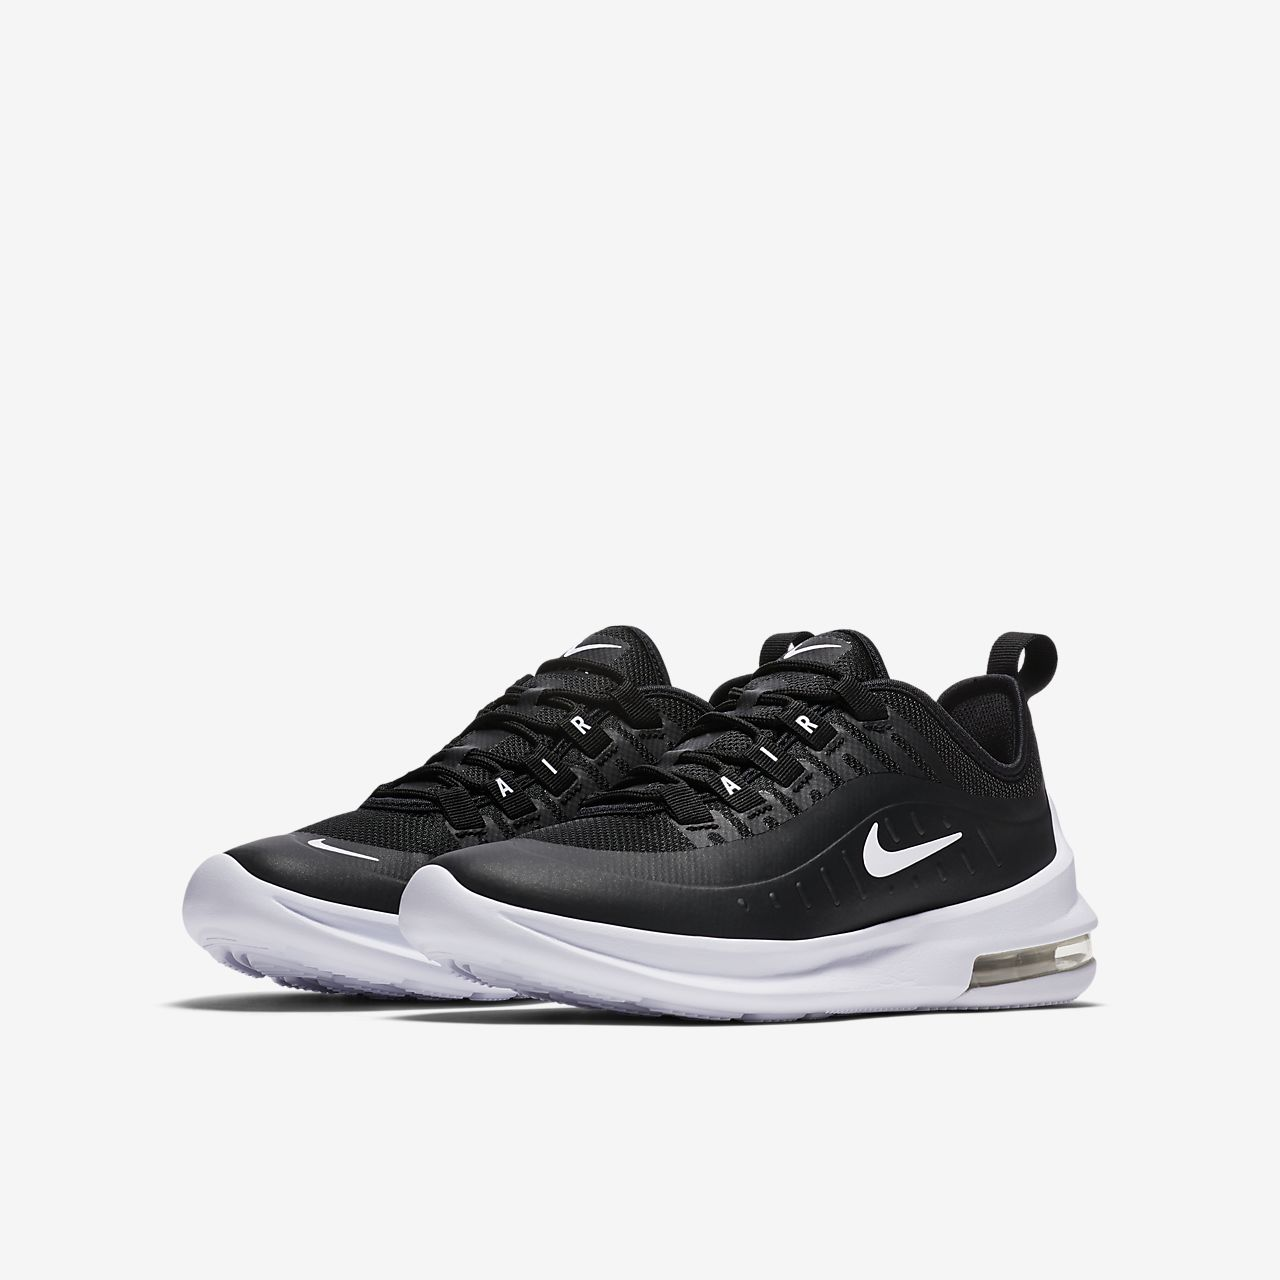 cheap for discount f7d04 23f48 ... Nike Air Max Axis-sko til store børn